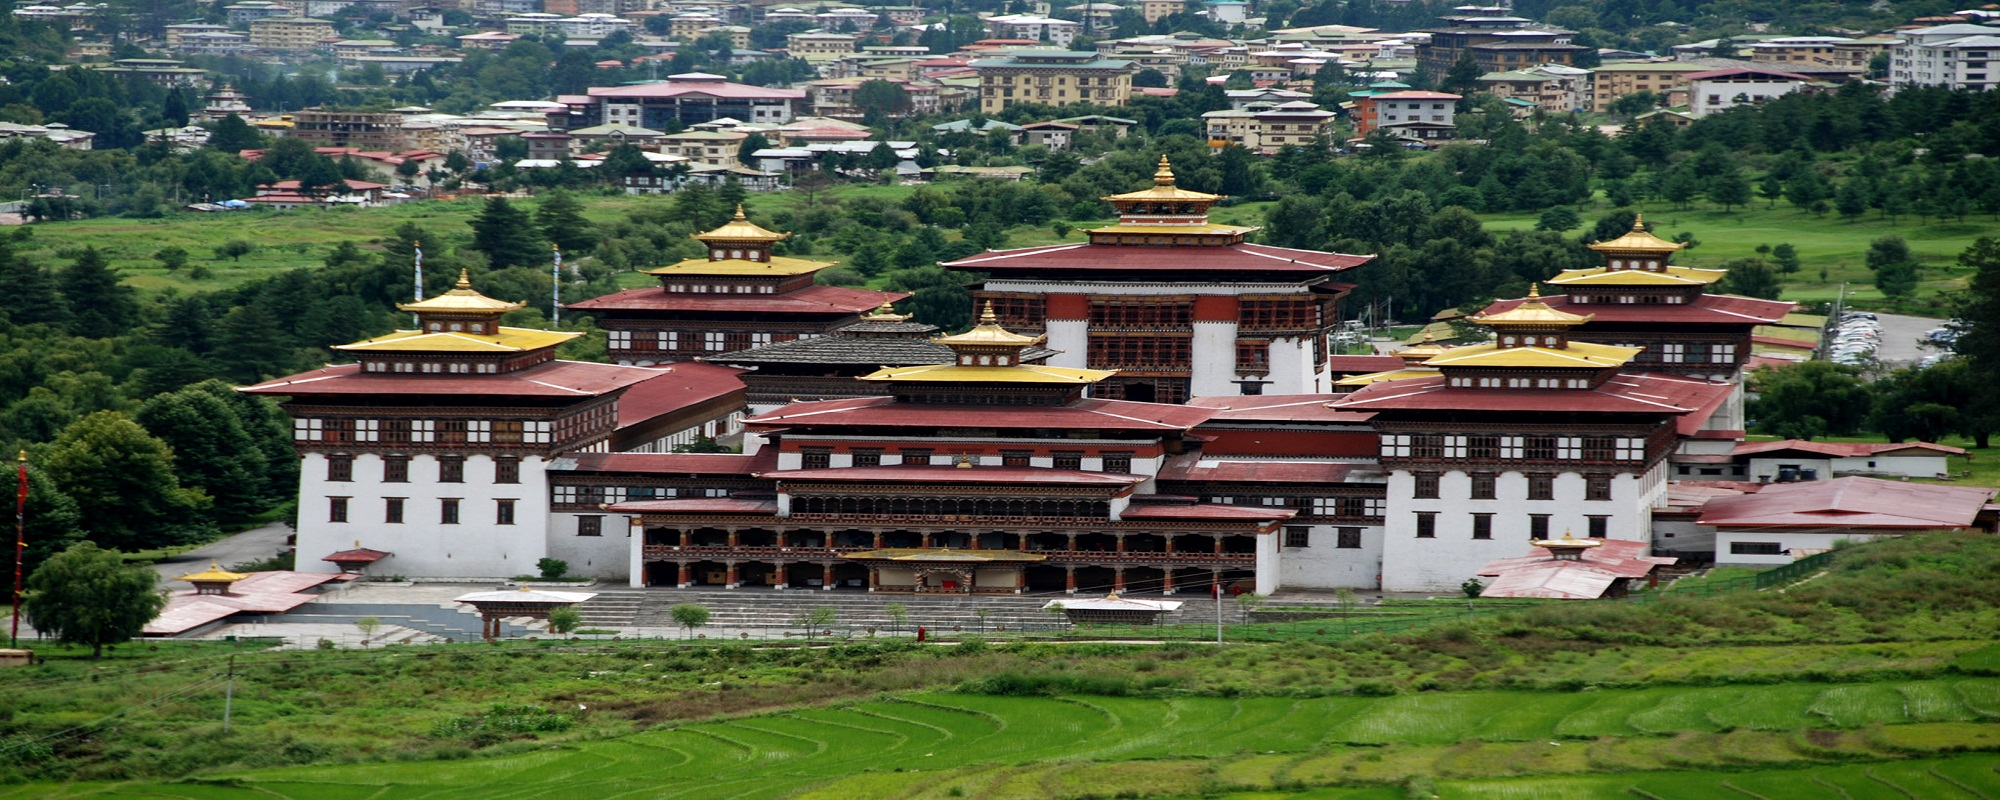 Bhutan City sight seeing tours